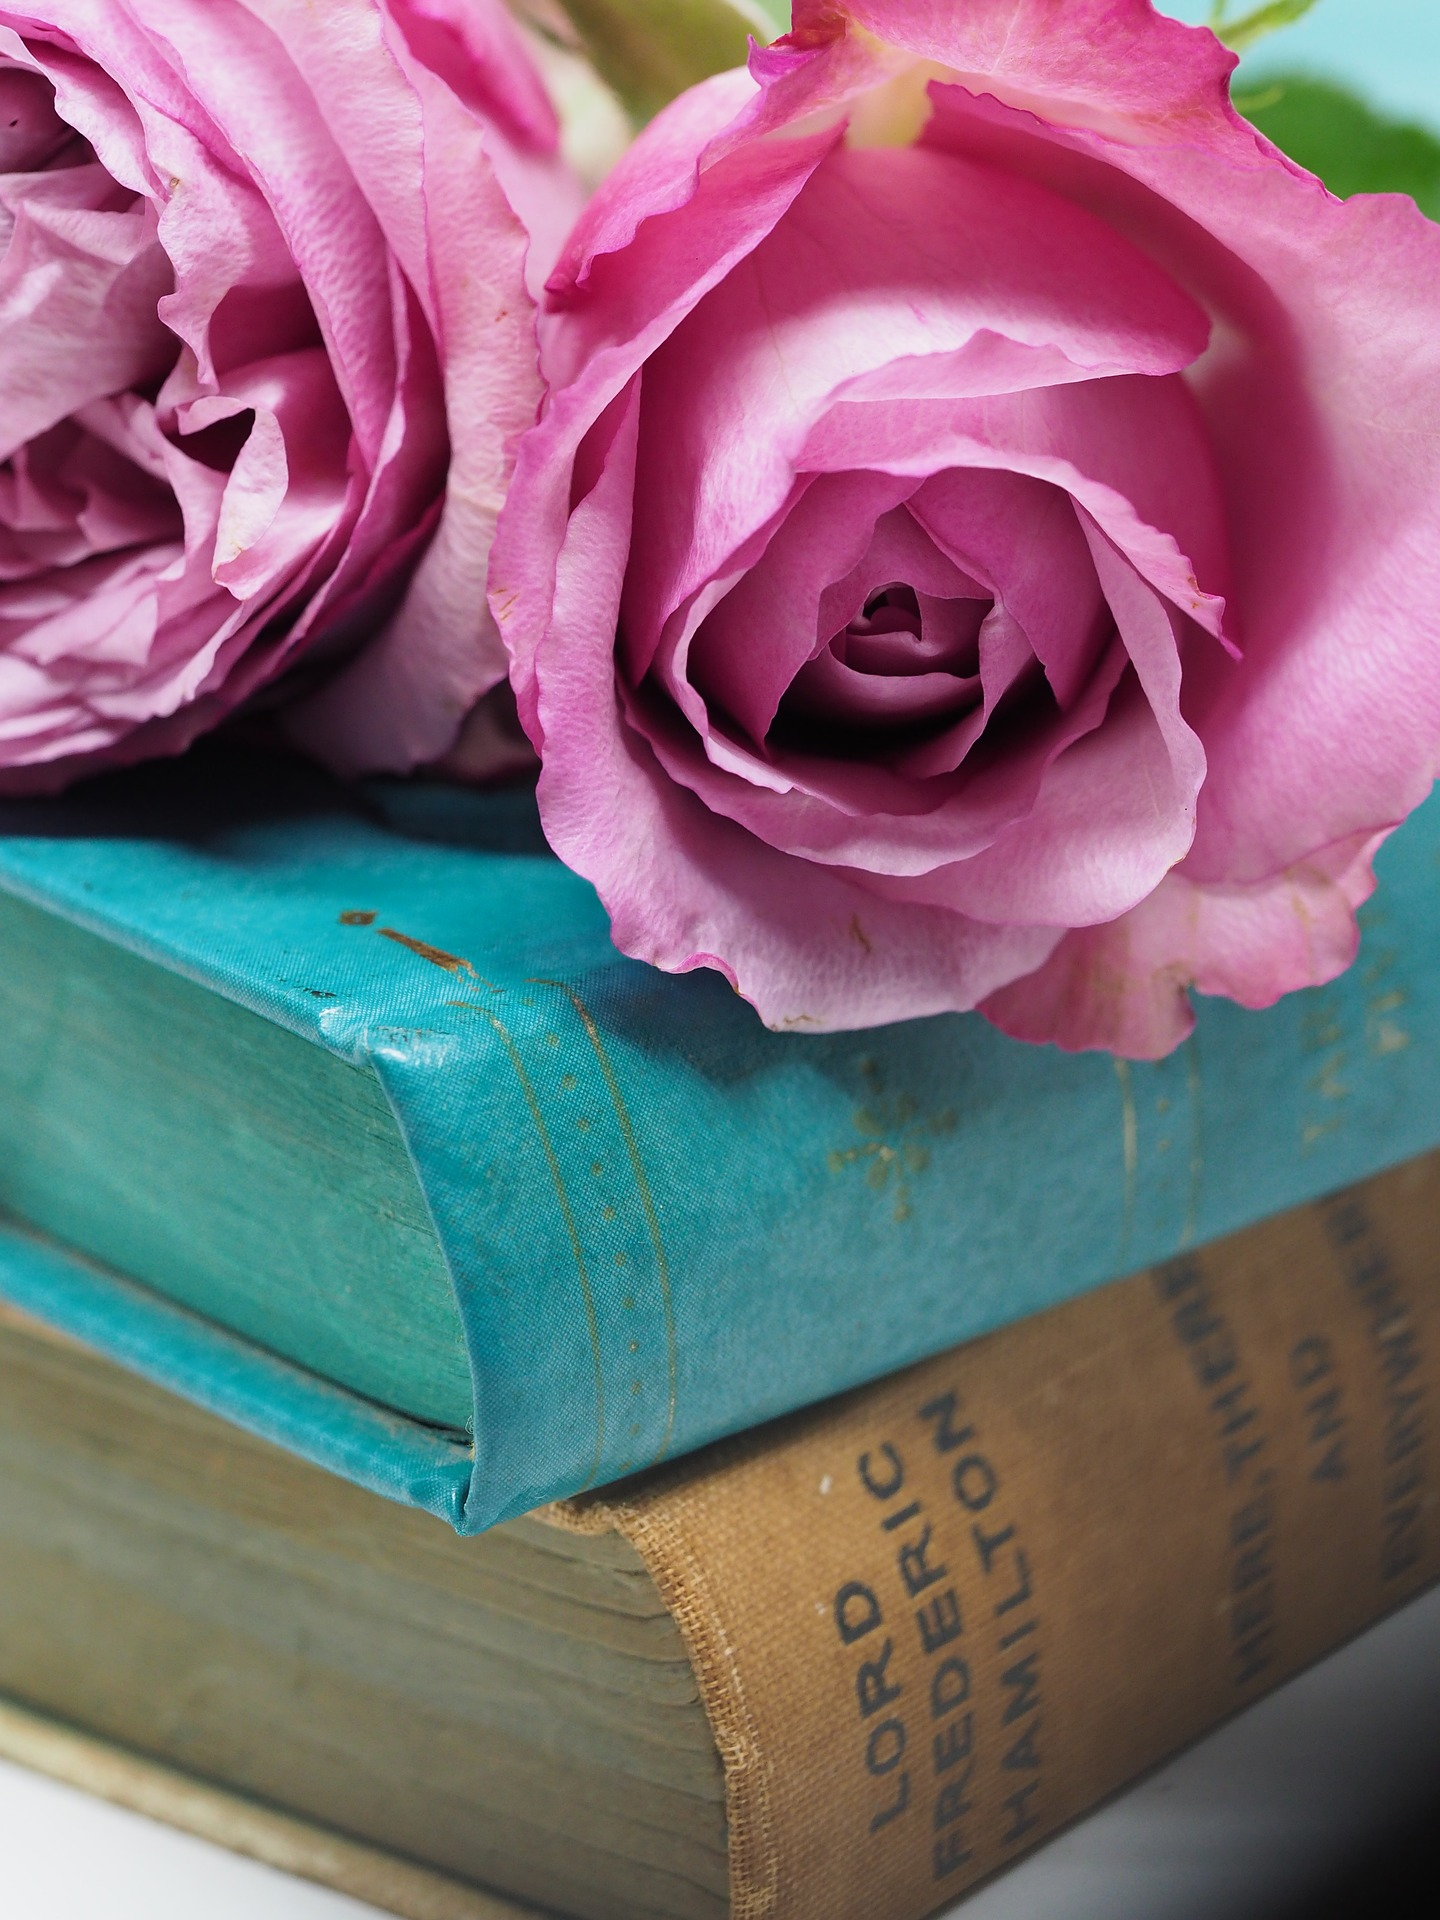 Pink Roses upon Two Books